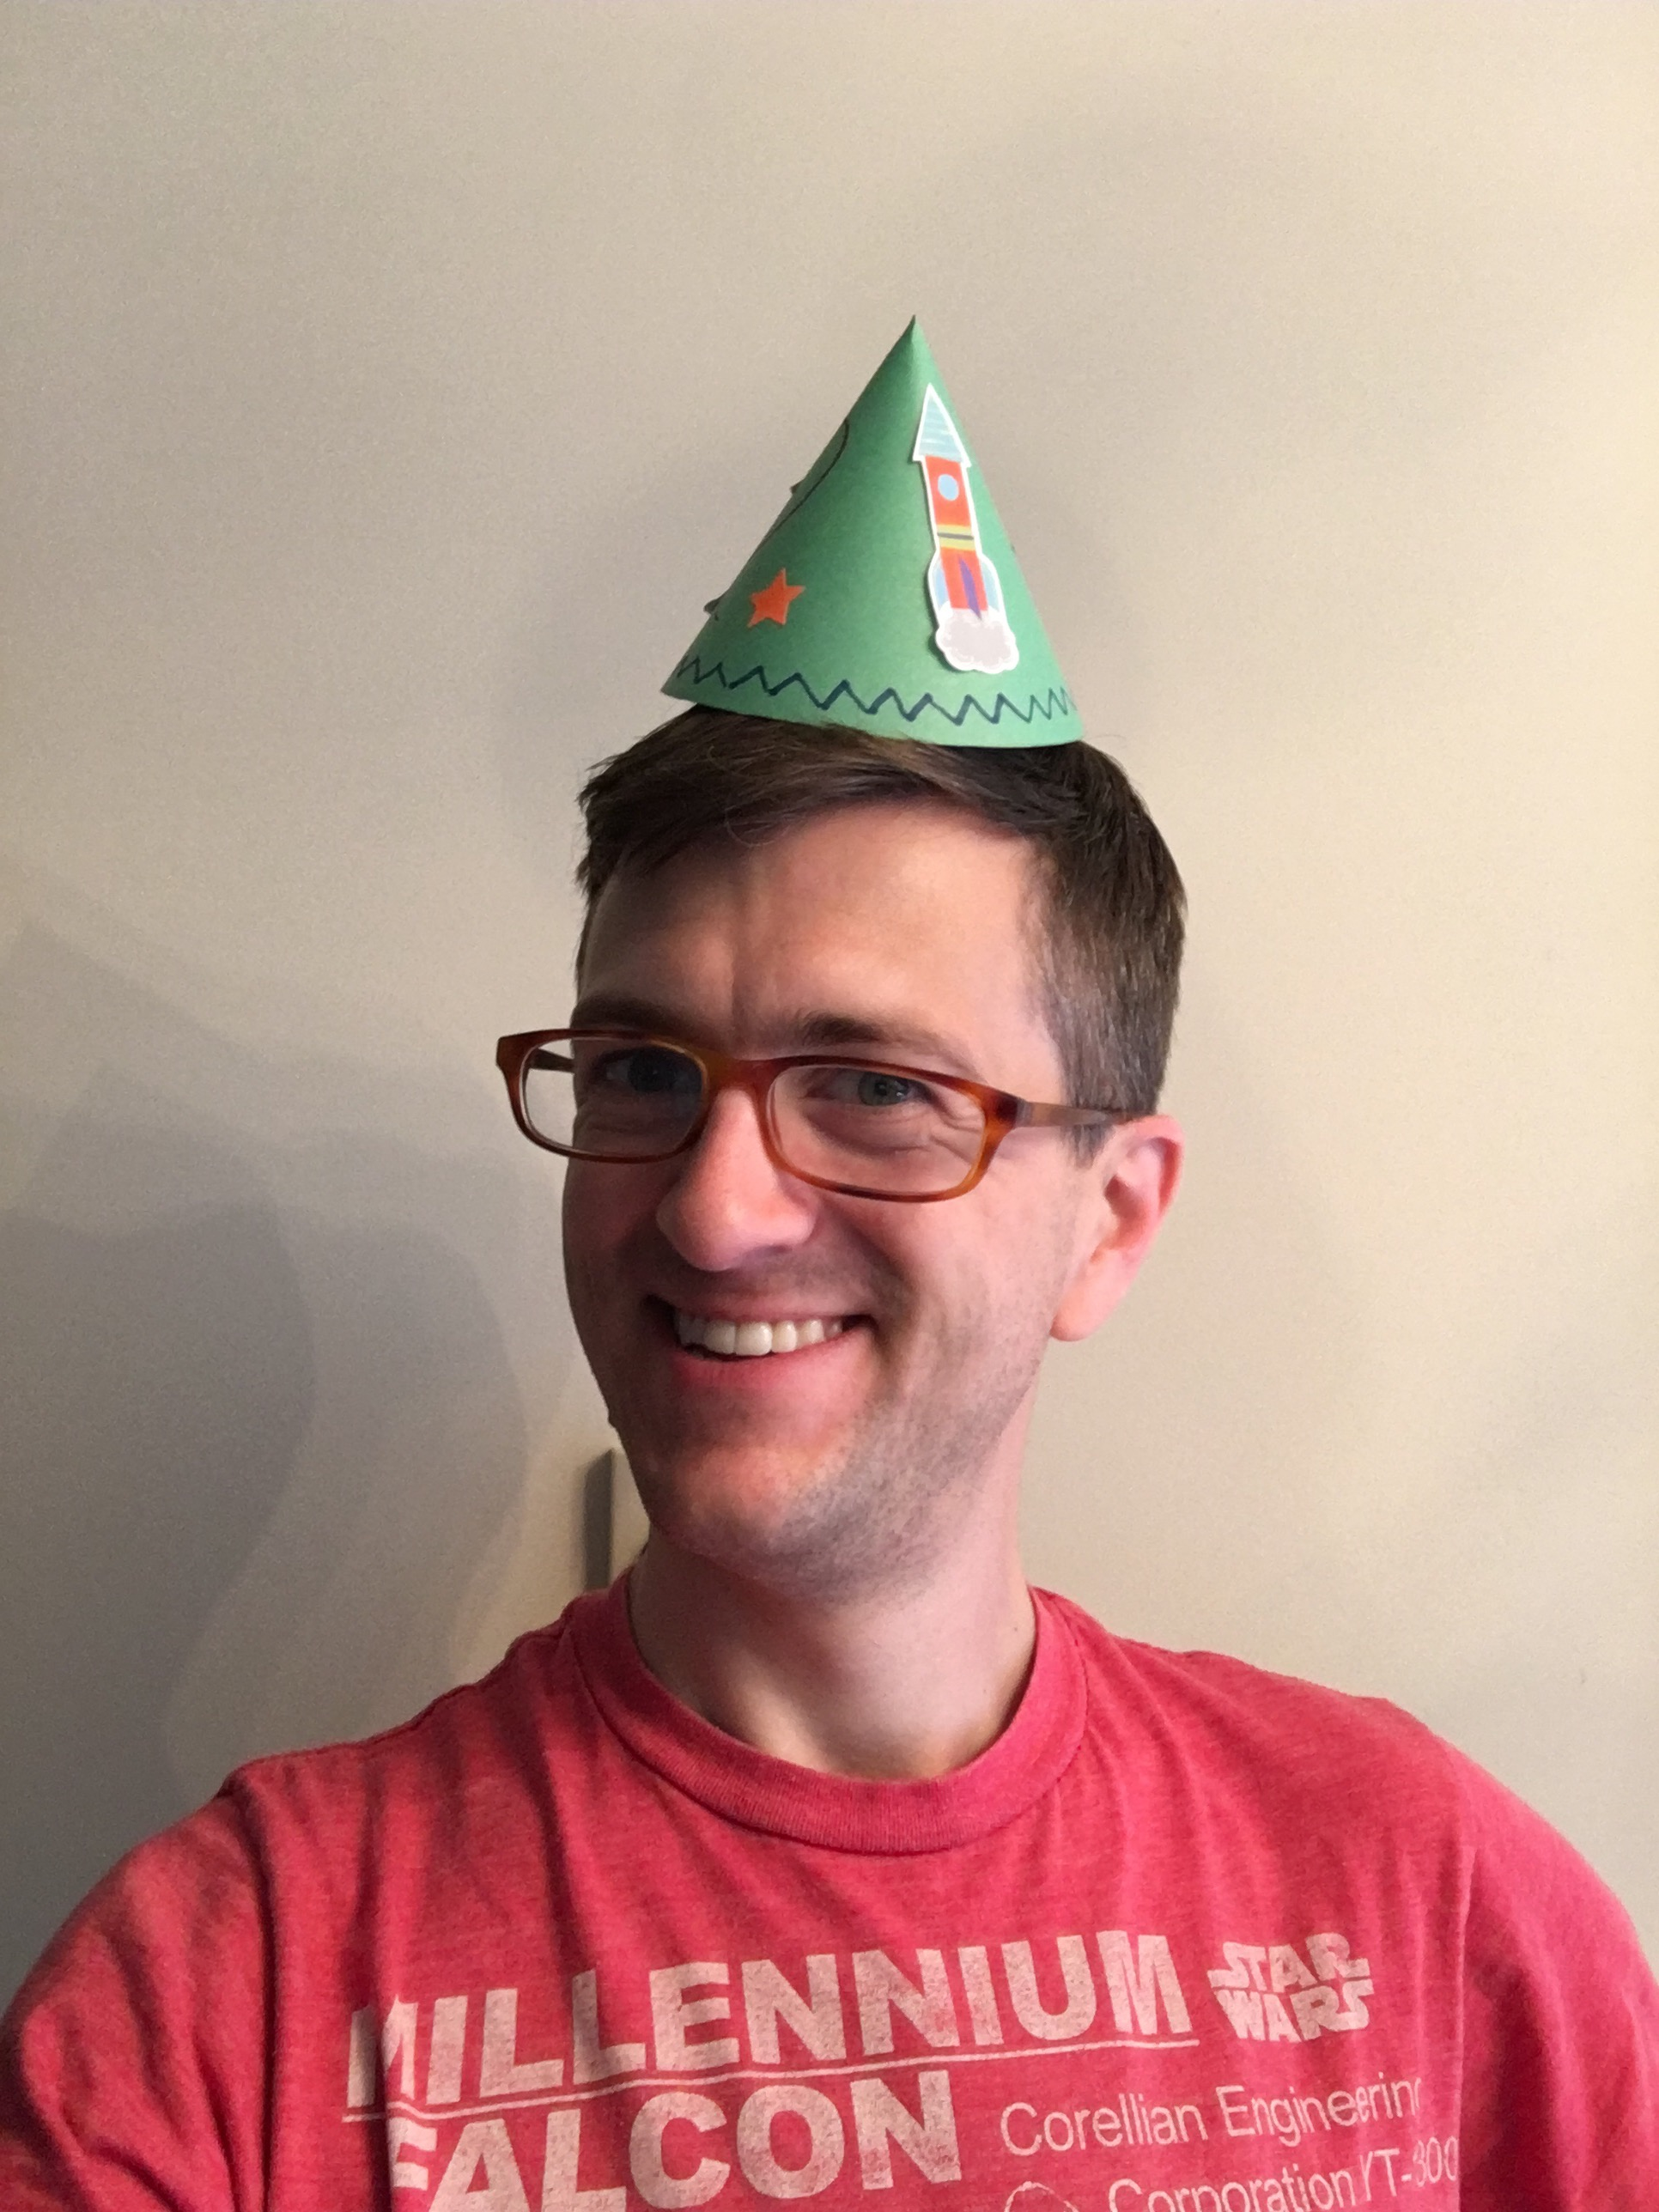 Selfie of Nick wearing a red Millennium Falcon shirt from Target and a green construction paper party hat with rocket stickers on it.